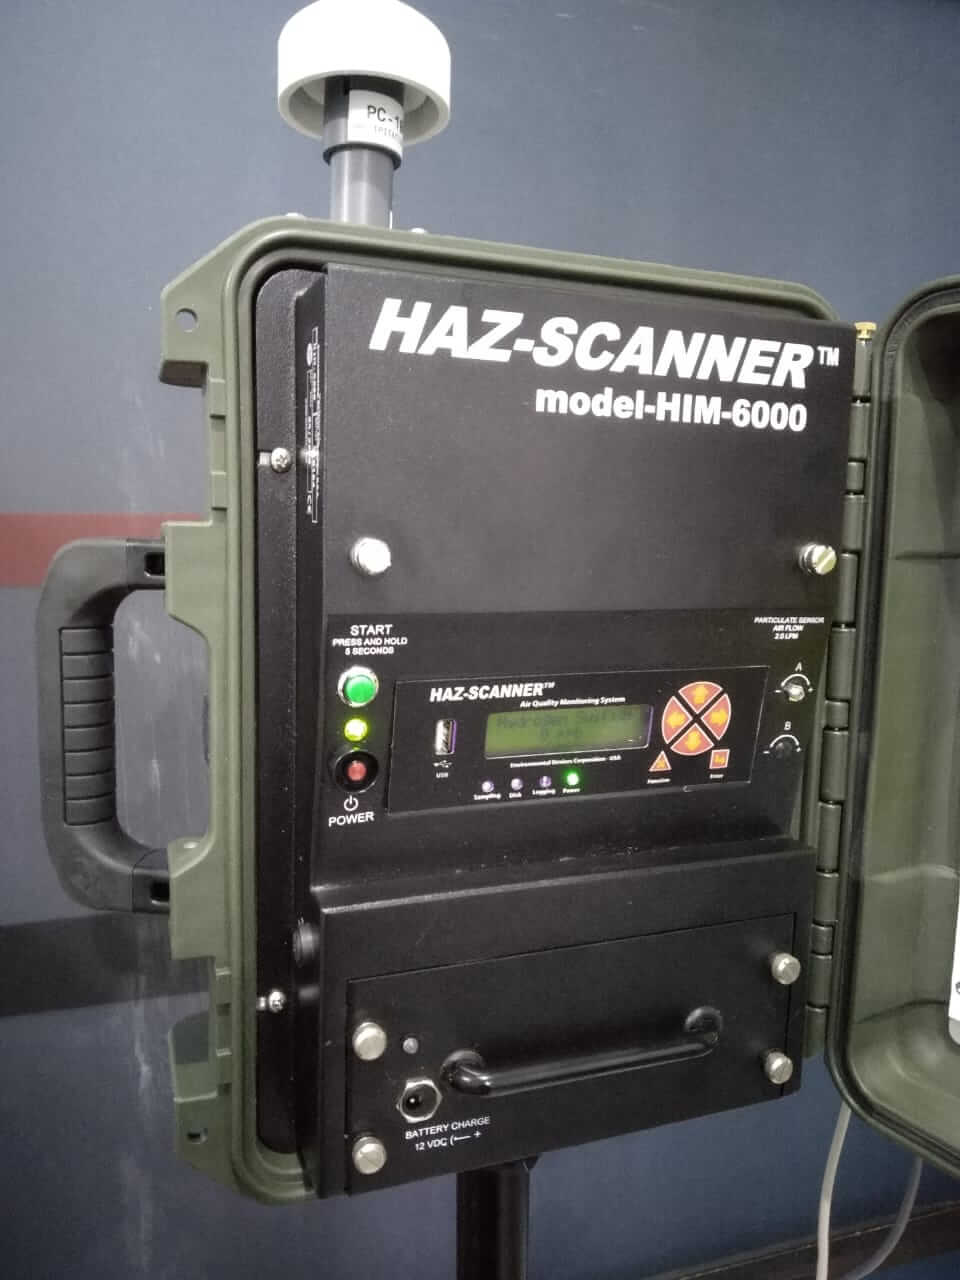 HAZ-SCANNER HIM 6000 (Air Quality Monitoring System)